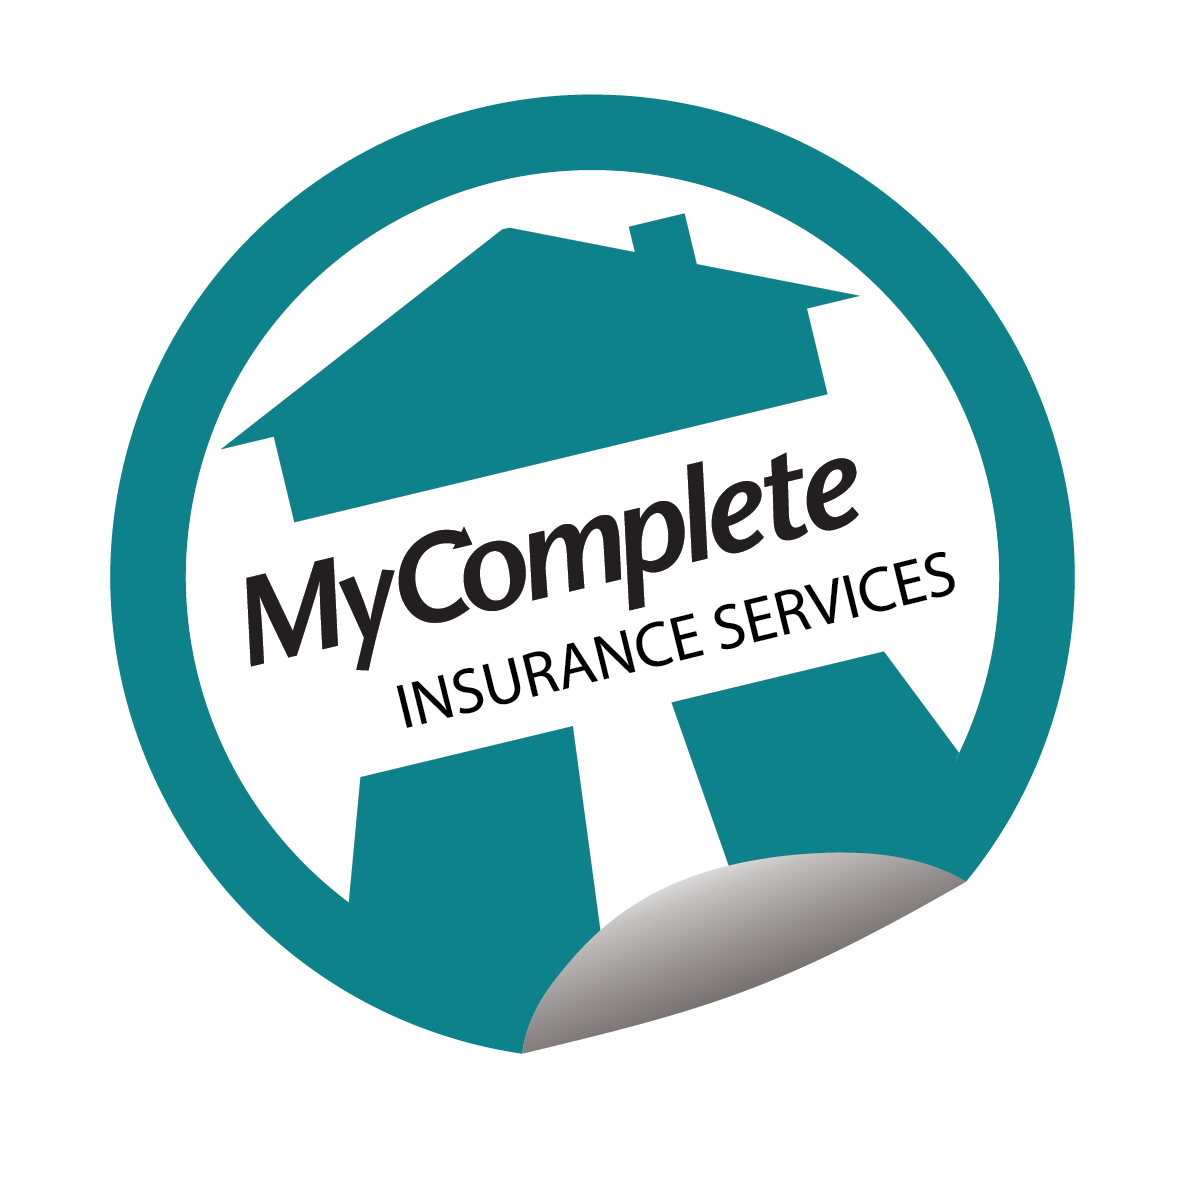 MyComplete Insurance Services